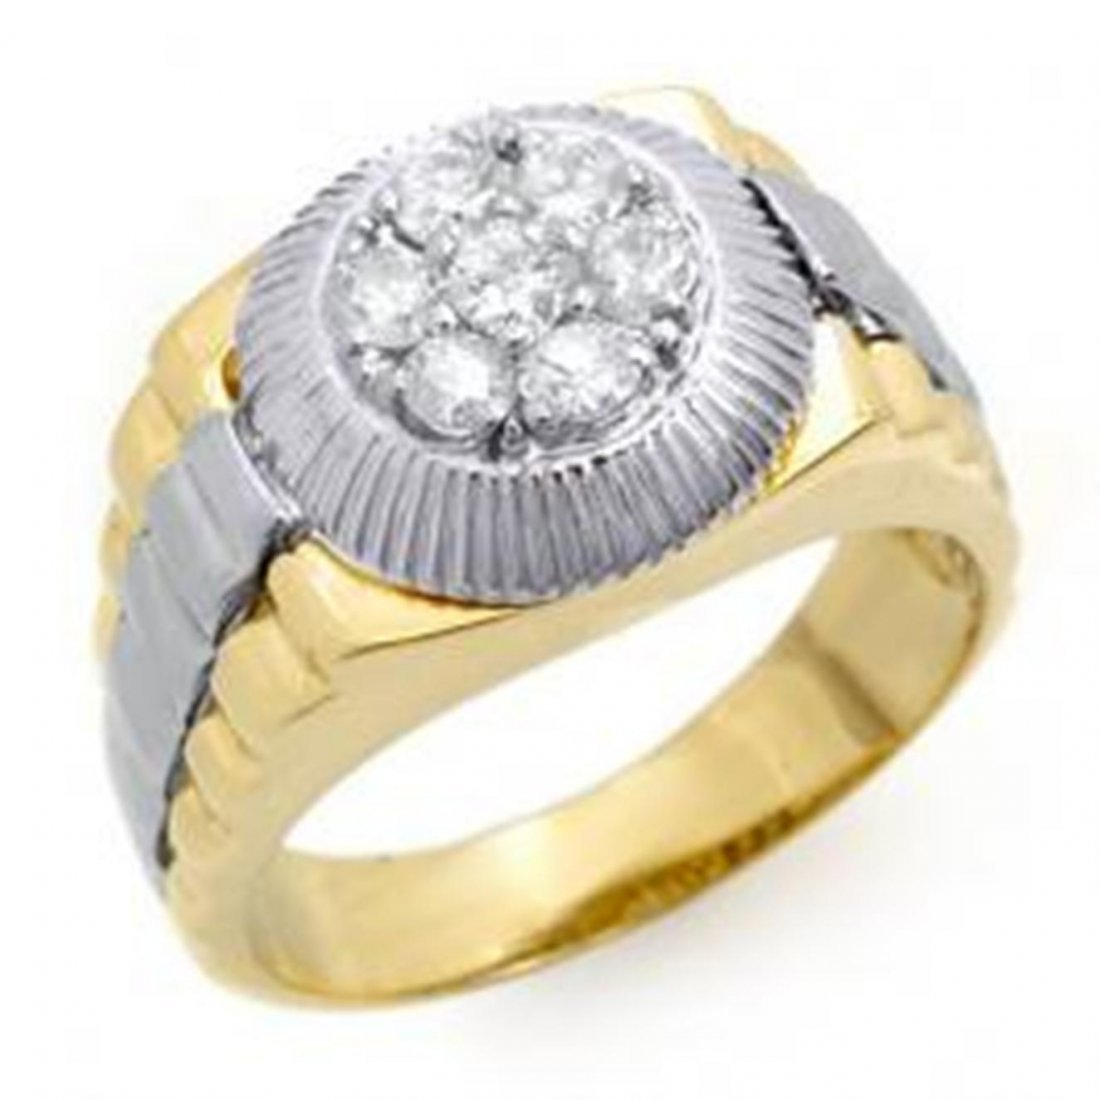 Rolex Style Man's Ring